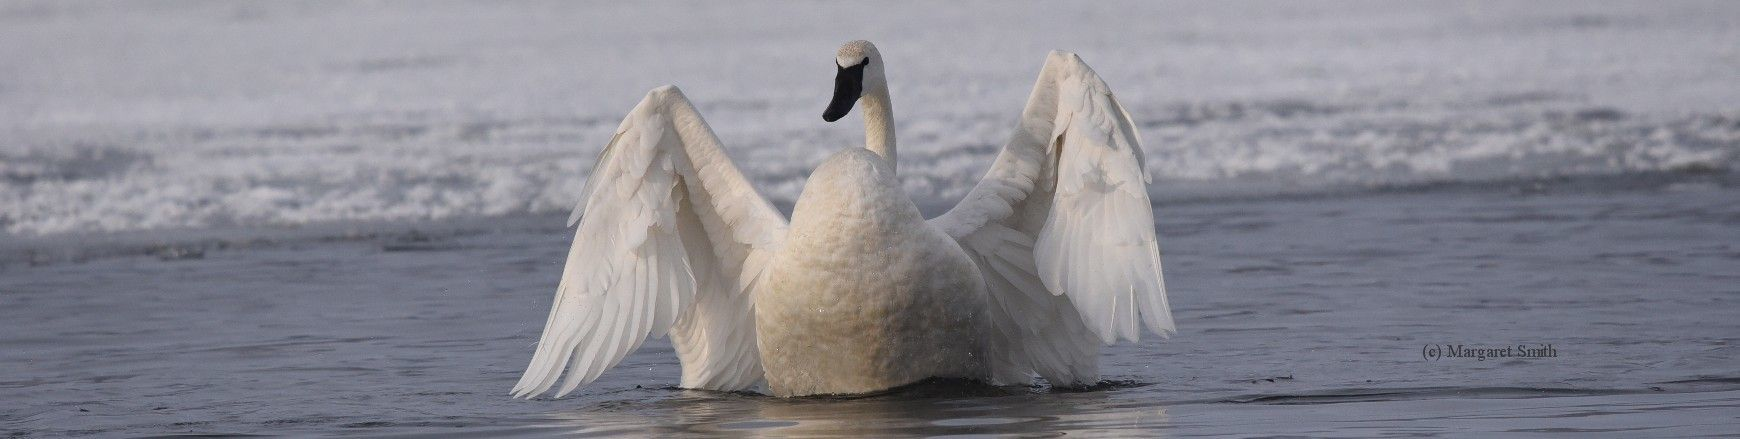 Sign up to receive the monthly Enewsletter of The Trumpeter Swan Society and you'll receive updates about swan issues, events and more! You can unsubscribe any time.